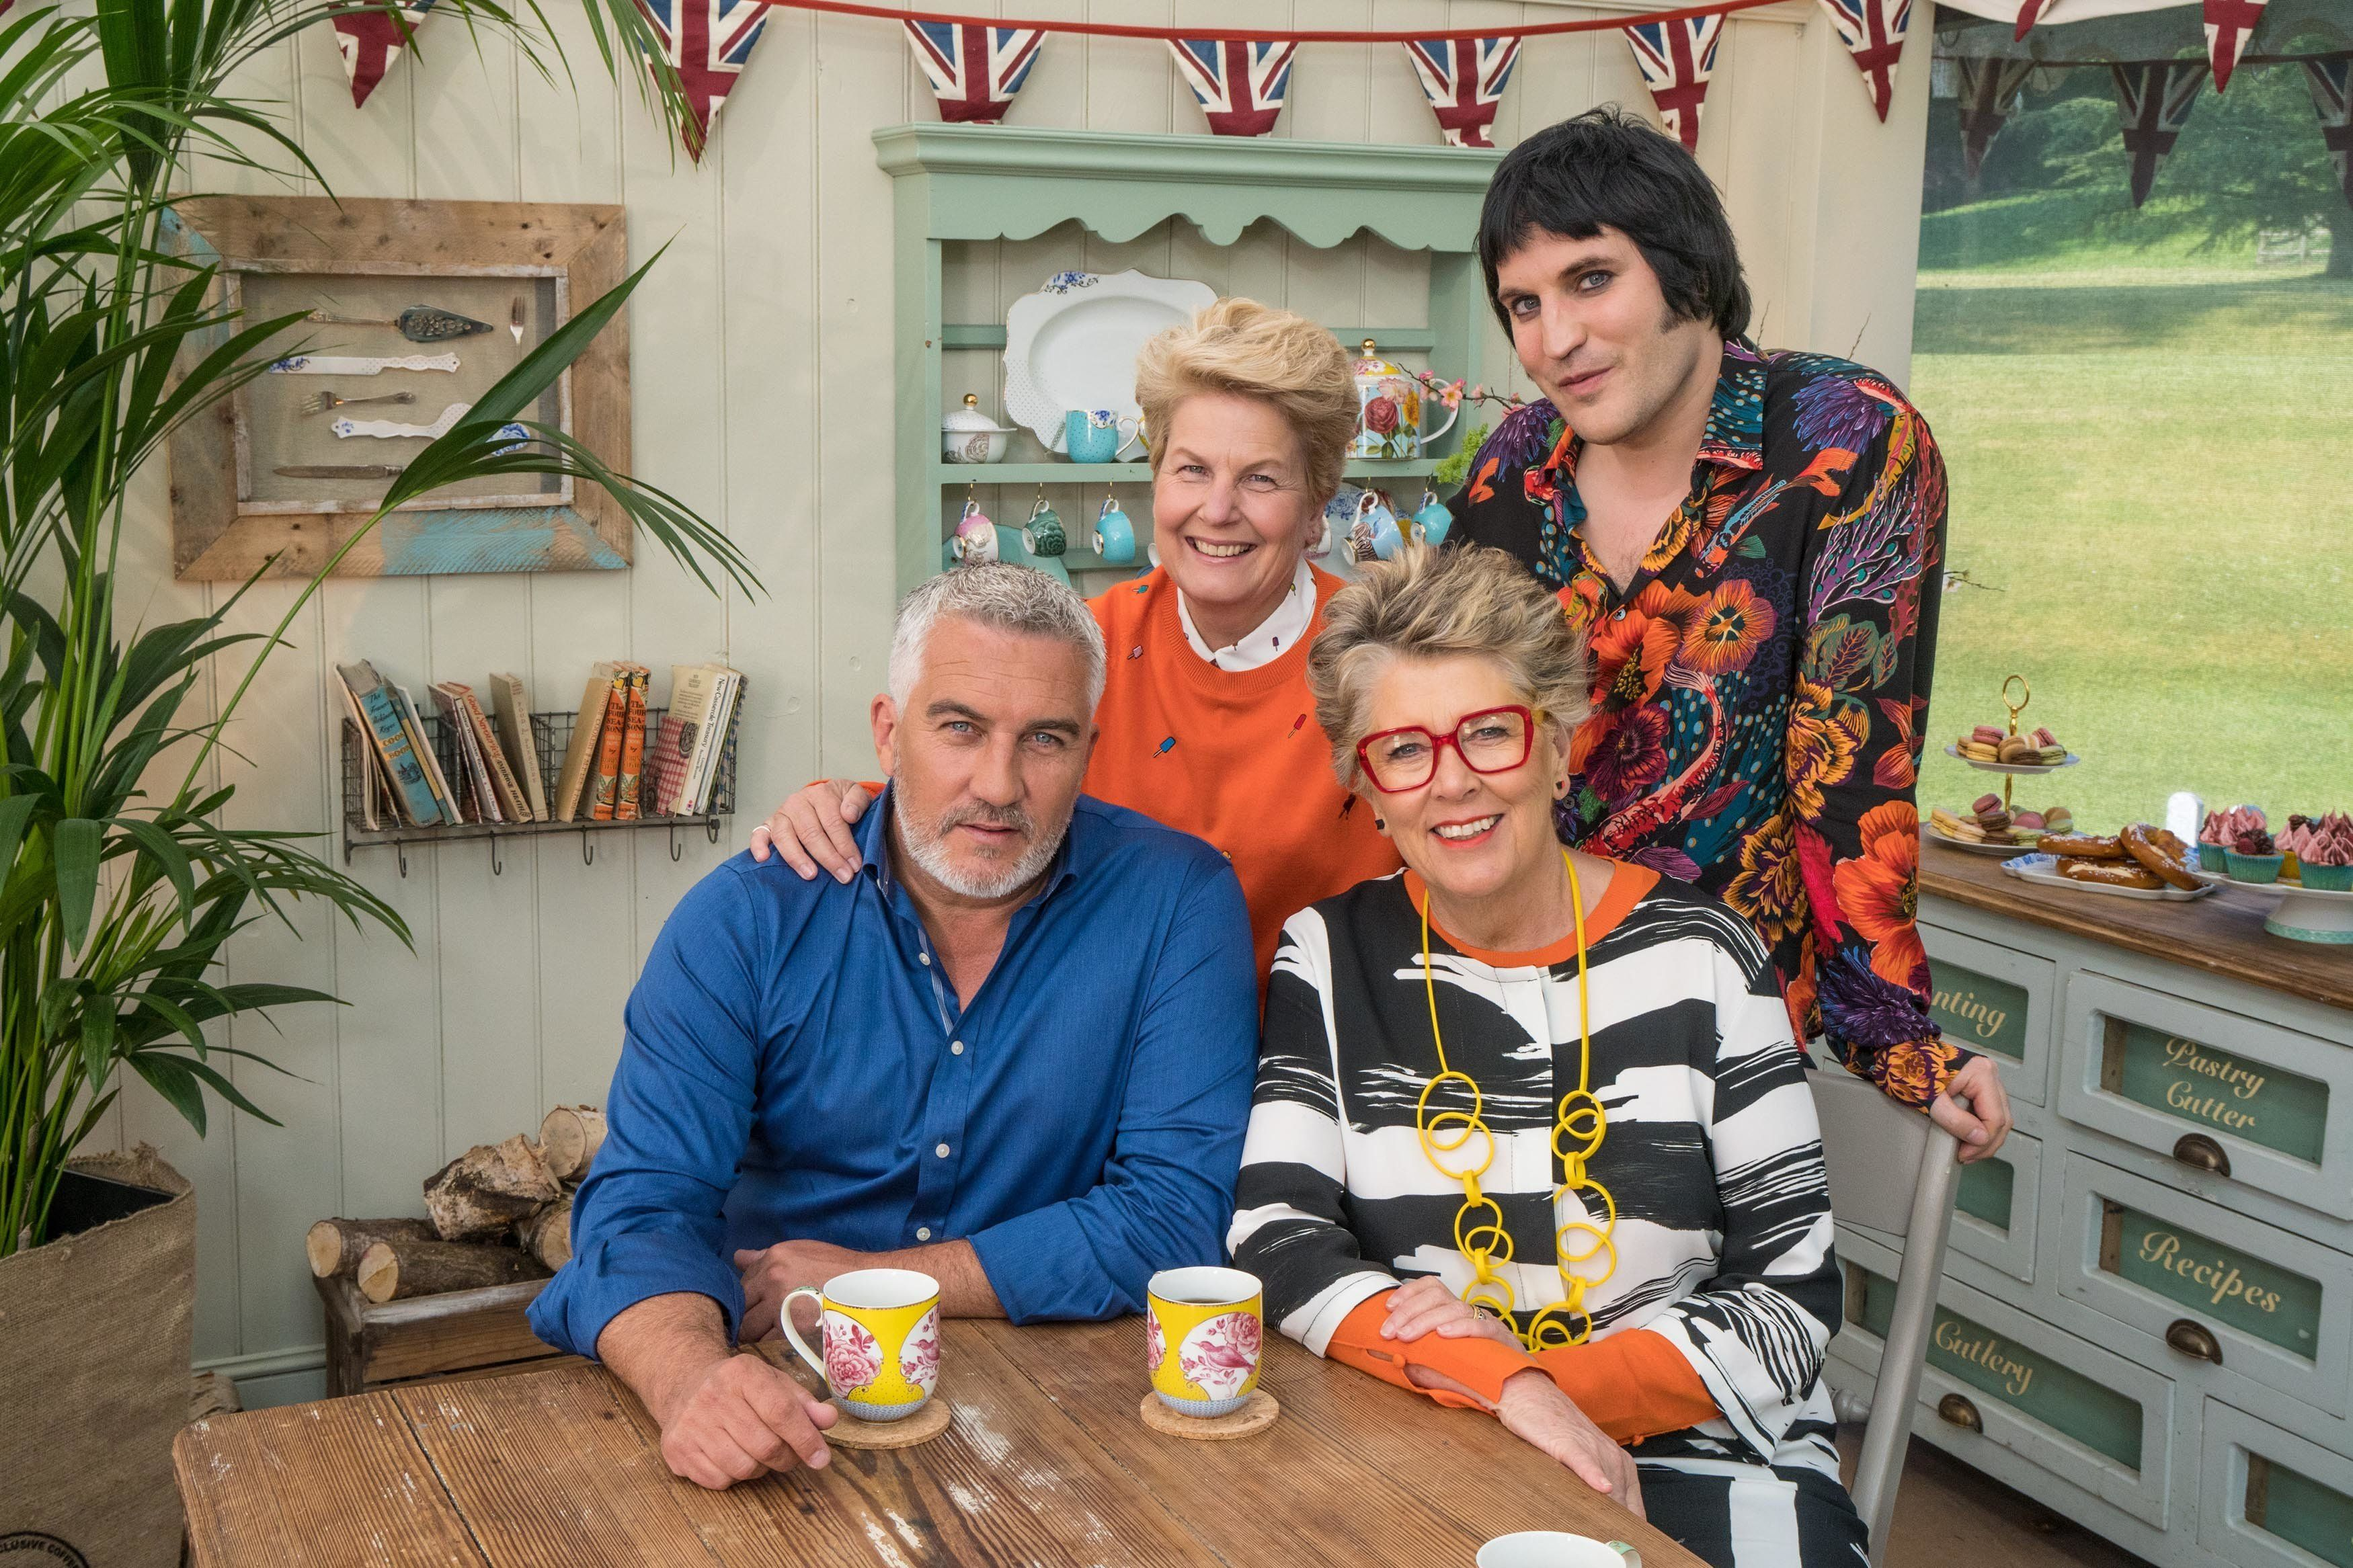 'Bake Off' Is Still A Hit As 7 Million Of Us Tune In For Second Season On Channel 4